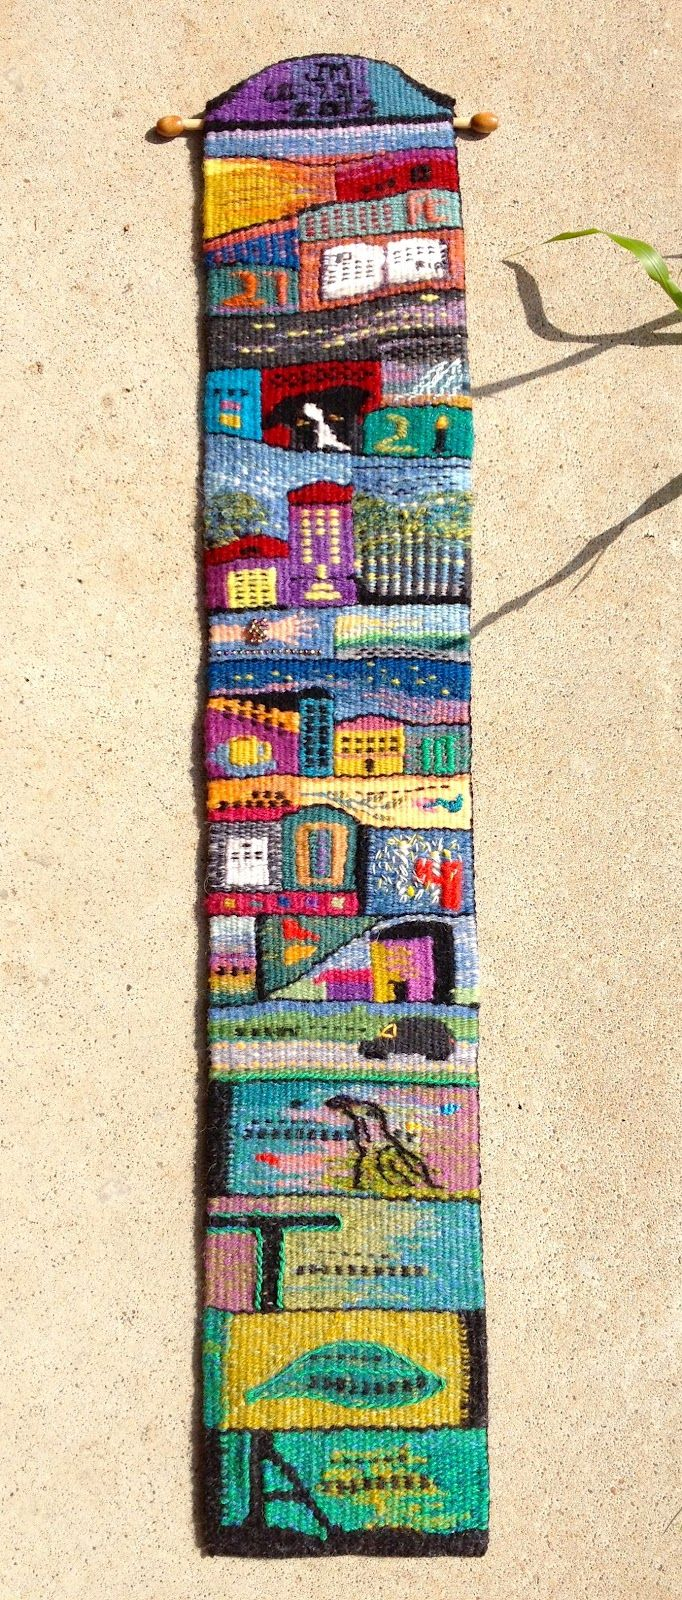 J Meetze Studio/Common Threads: July Tapestry Diary is Finished!